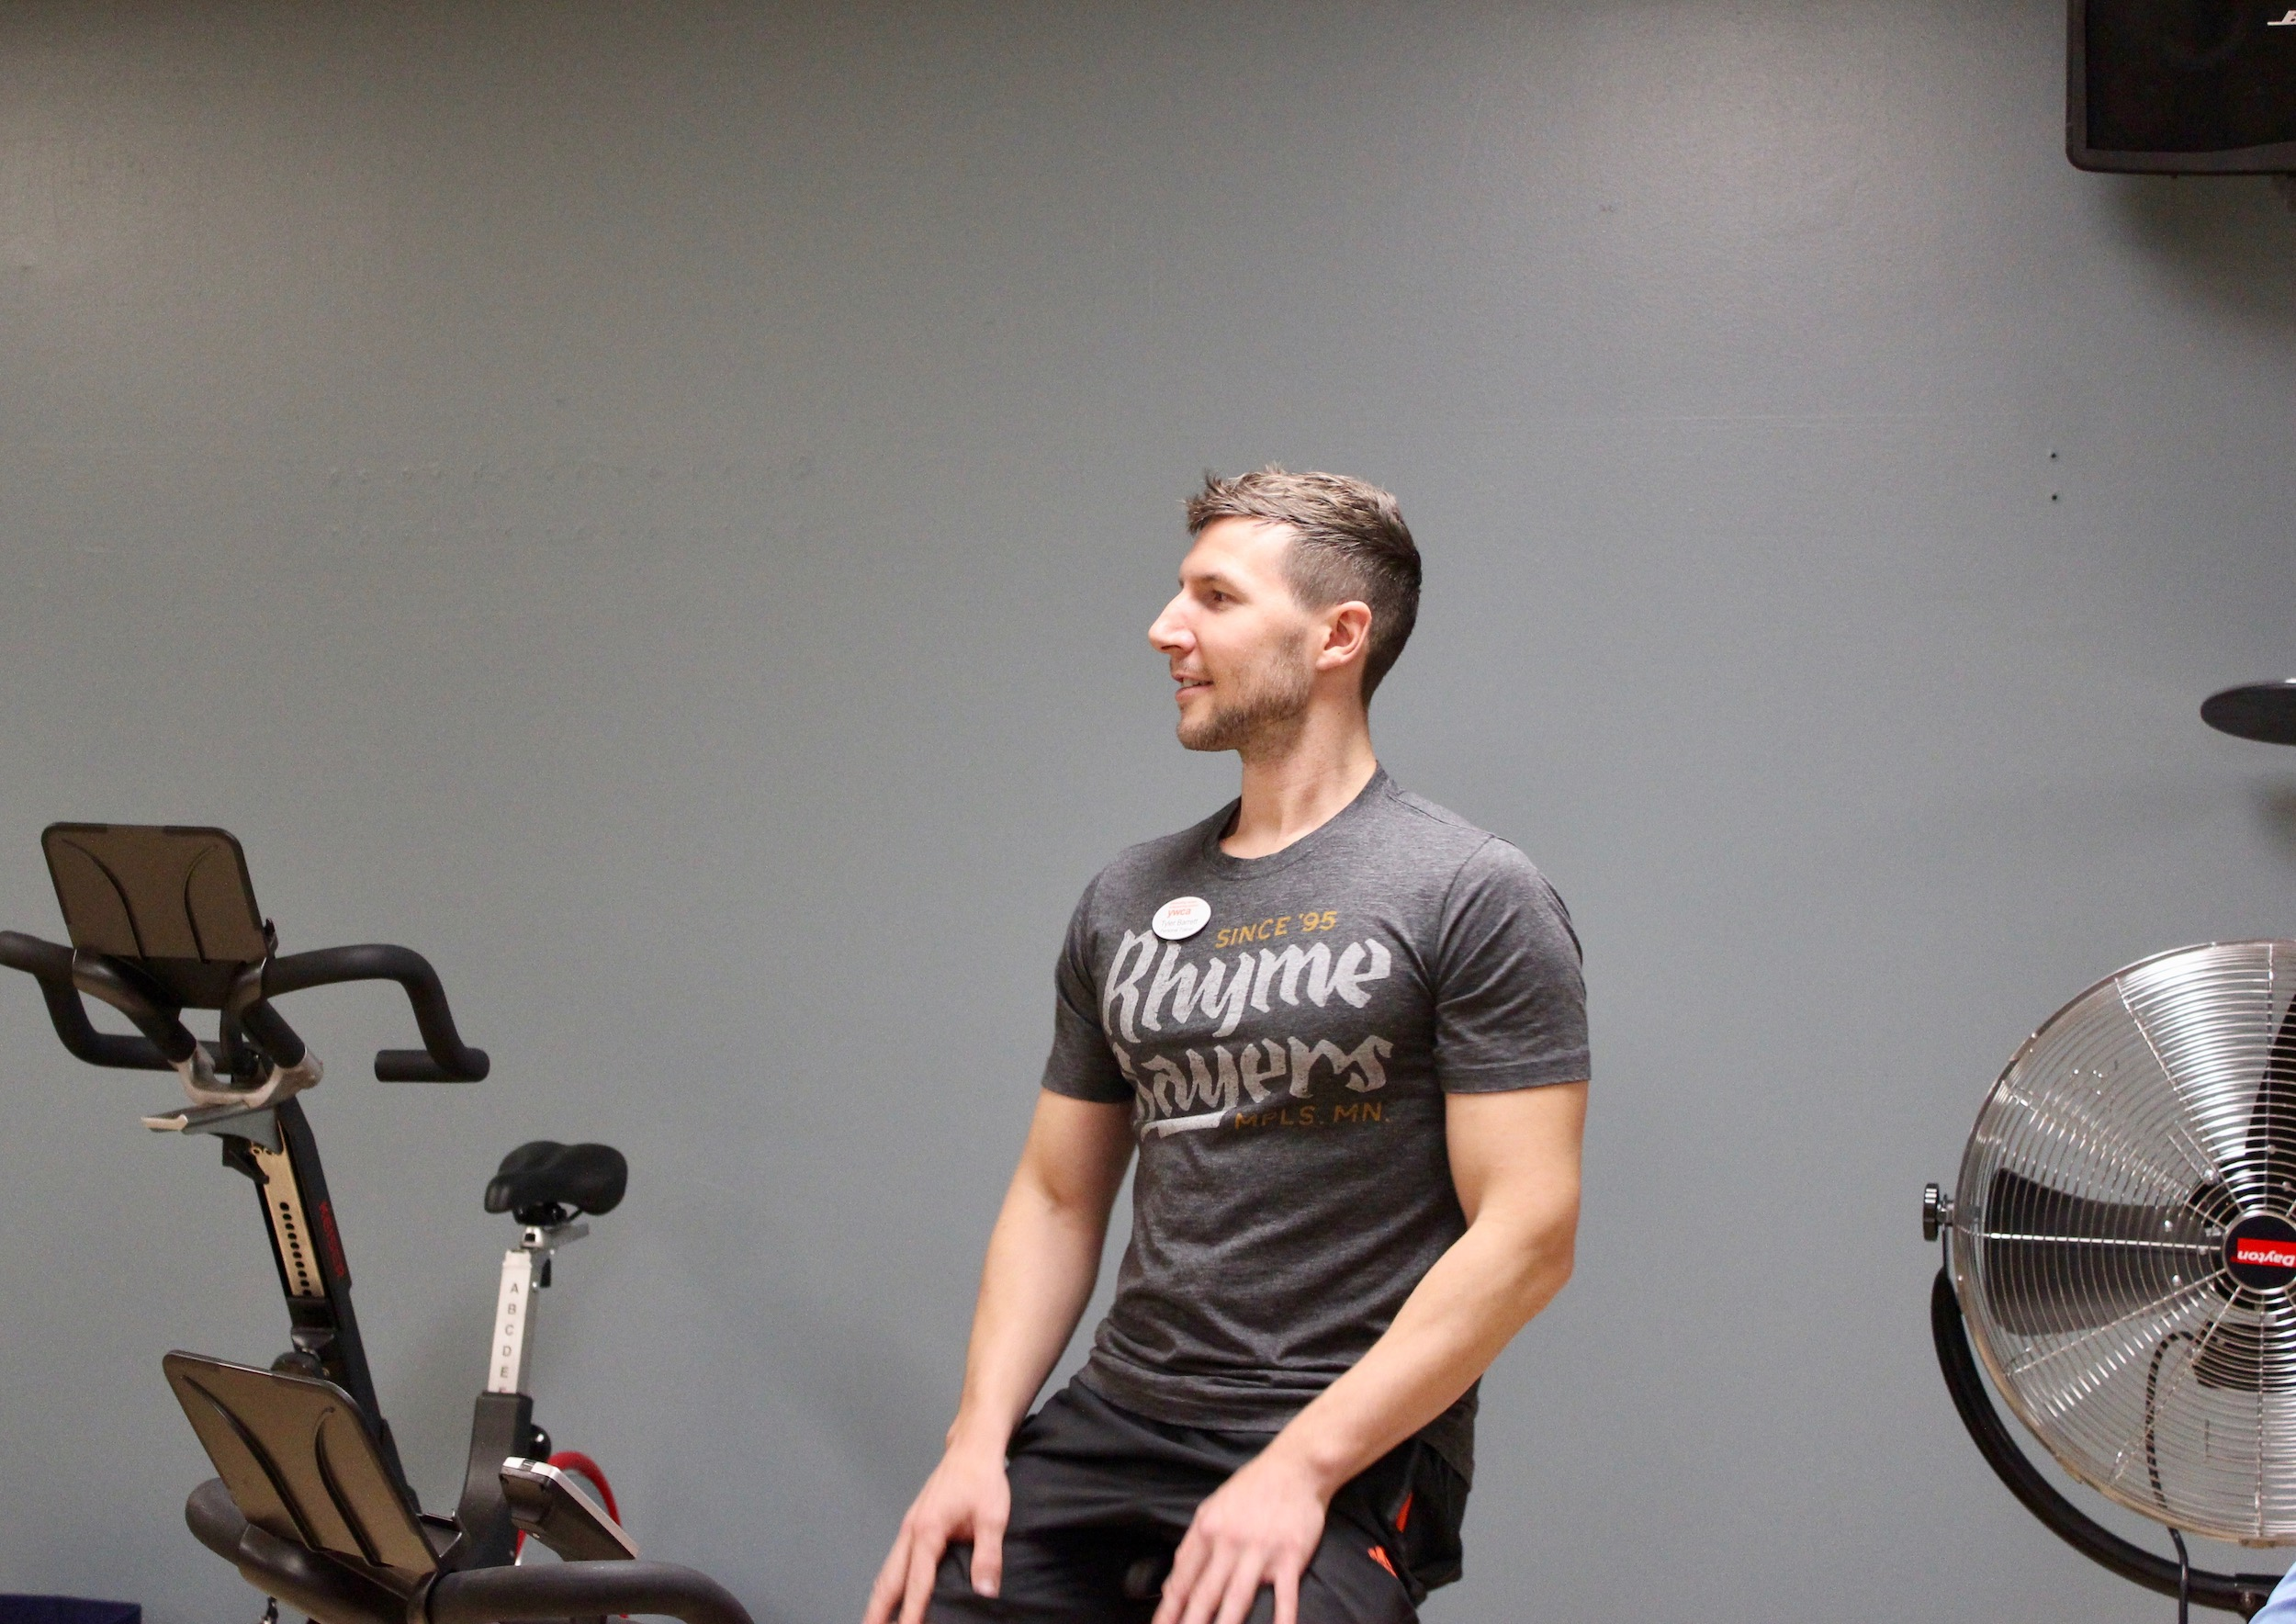 YWCA trainer Tyler Barrett leads a Cycle Circle class at the Uptown YWCA on Nov. 27. Photo by Andrew Hazzard.